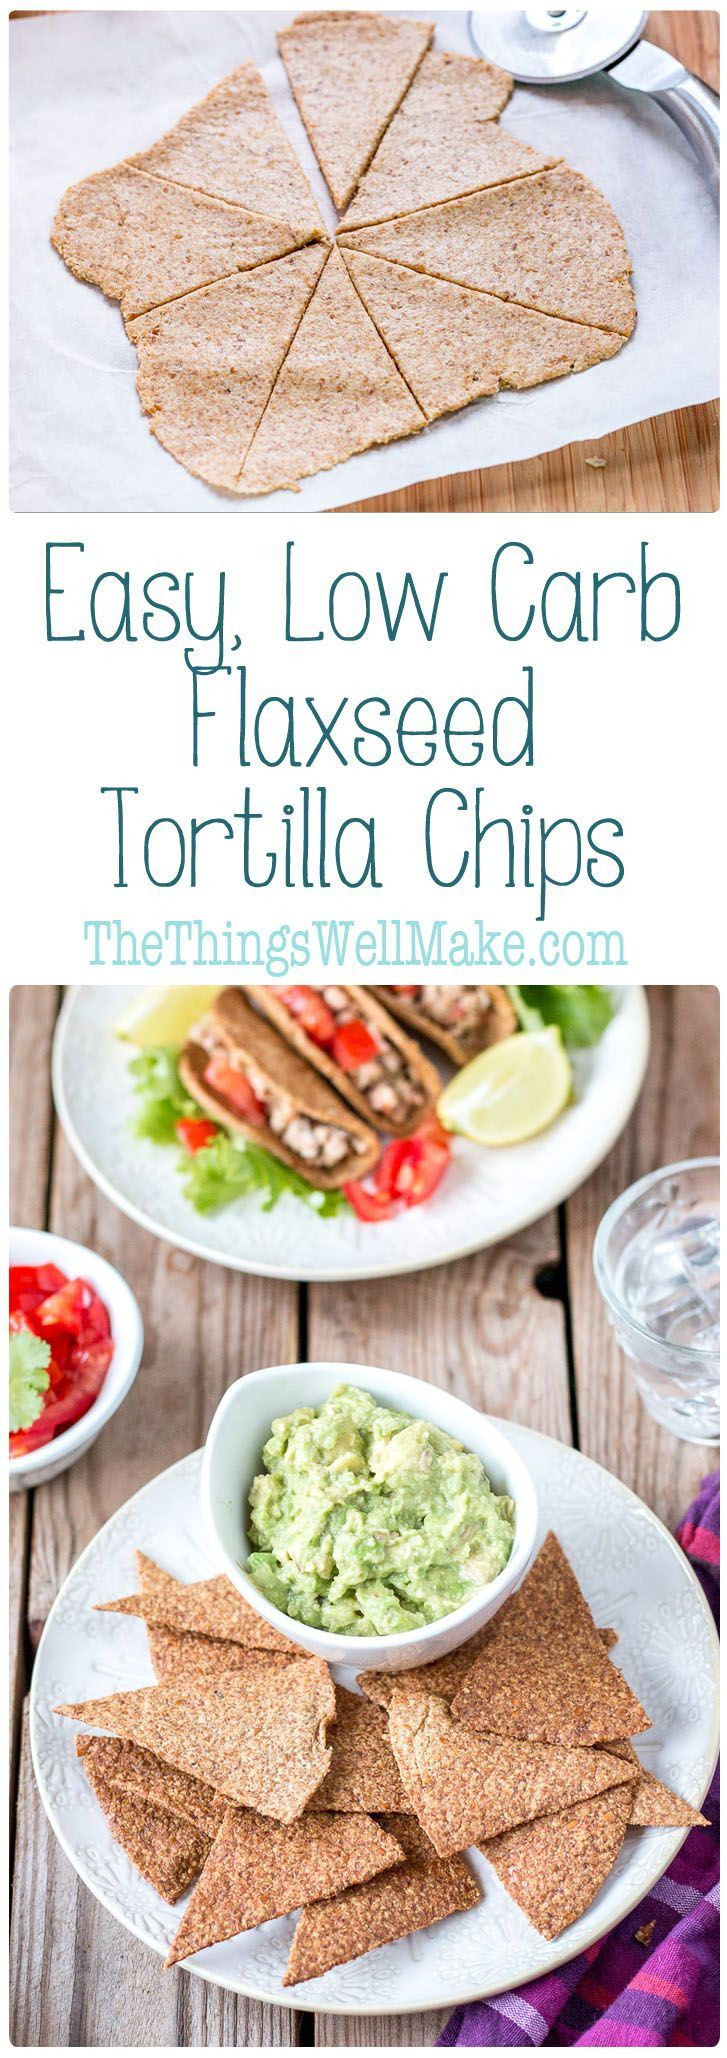 What Can I Make For Dinner With These Ingredients  100 Flaxseed Meal Recipes on Pinterest